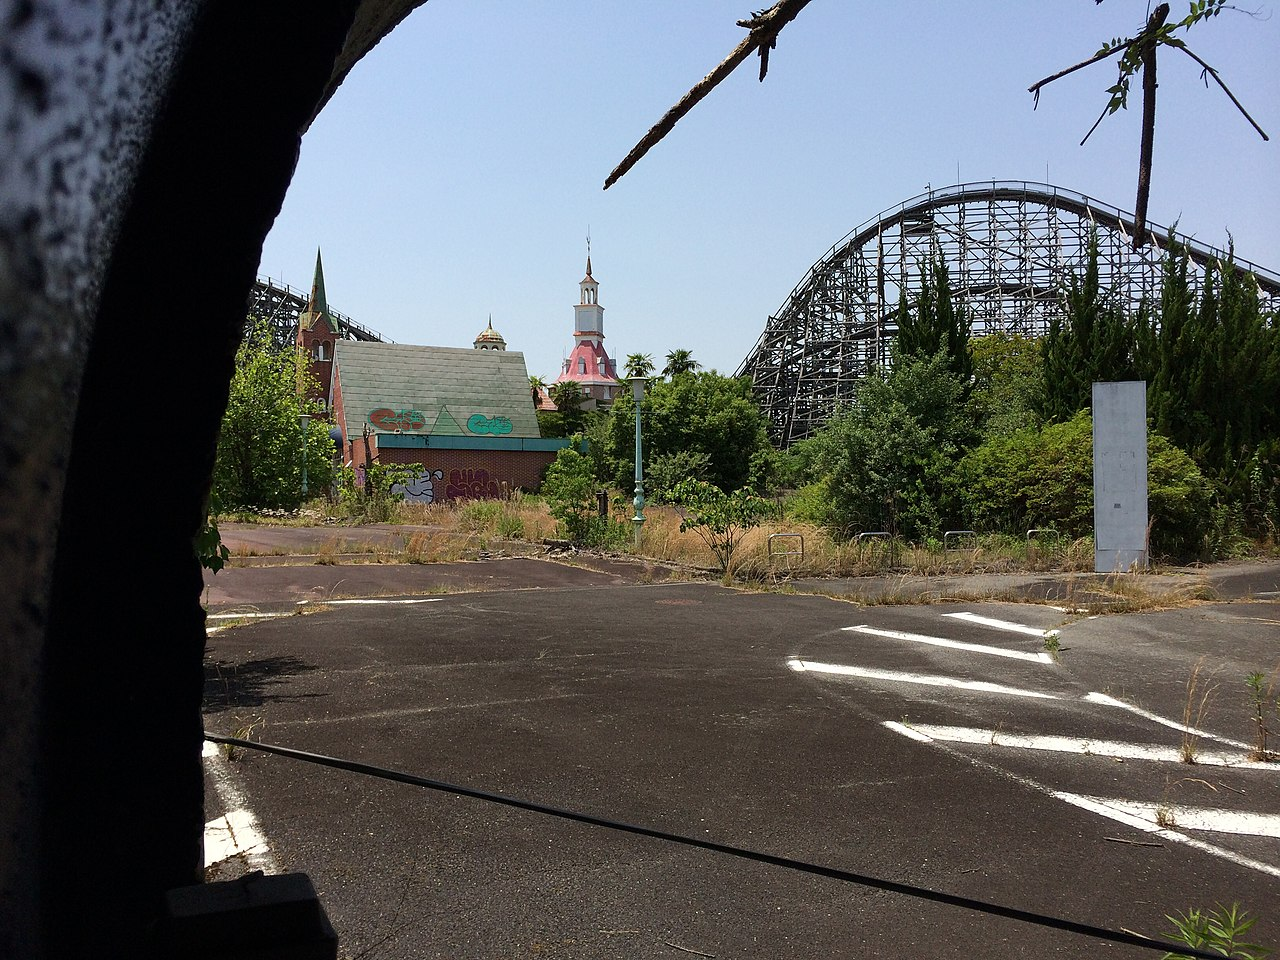 amusement park, nara dreamland